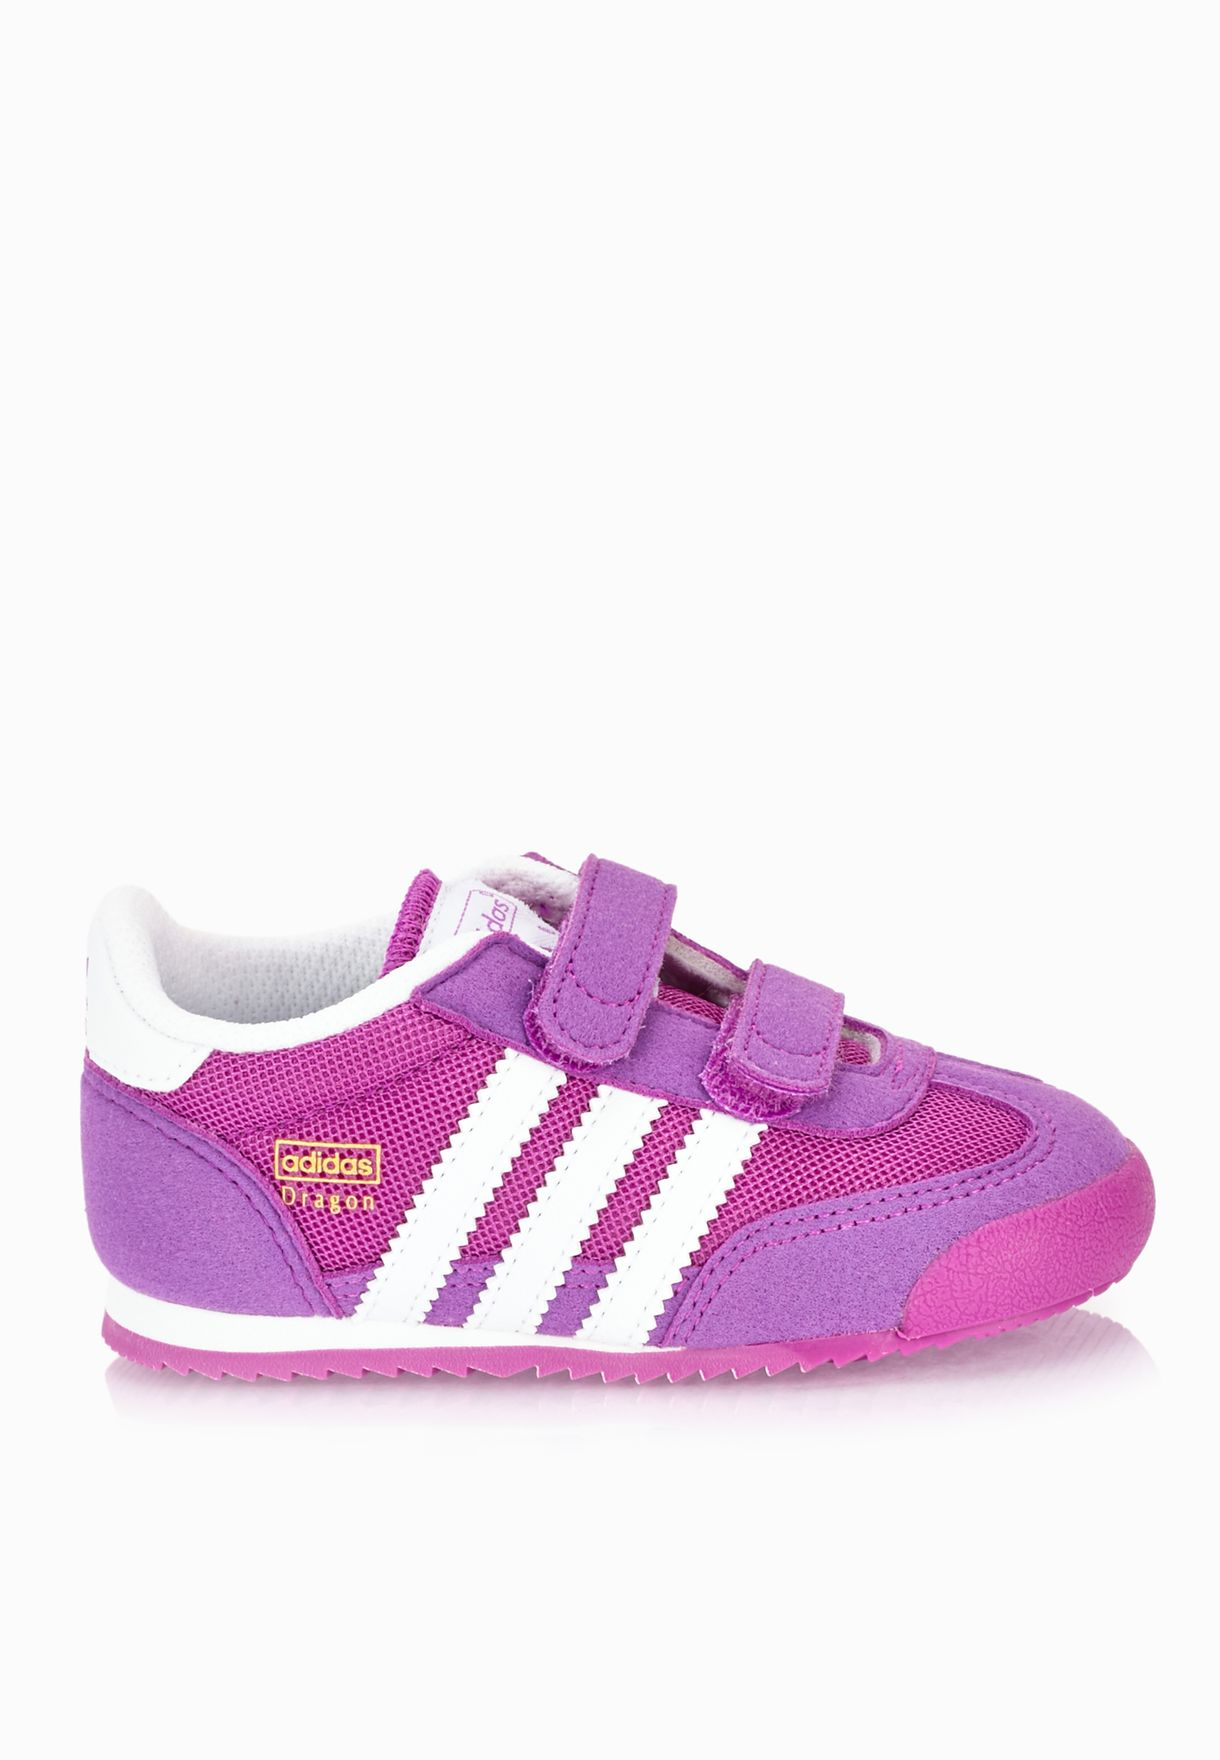 official photos 5fe54 9c08c adidas Originals. Dragon Infant